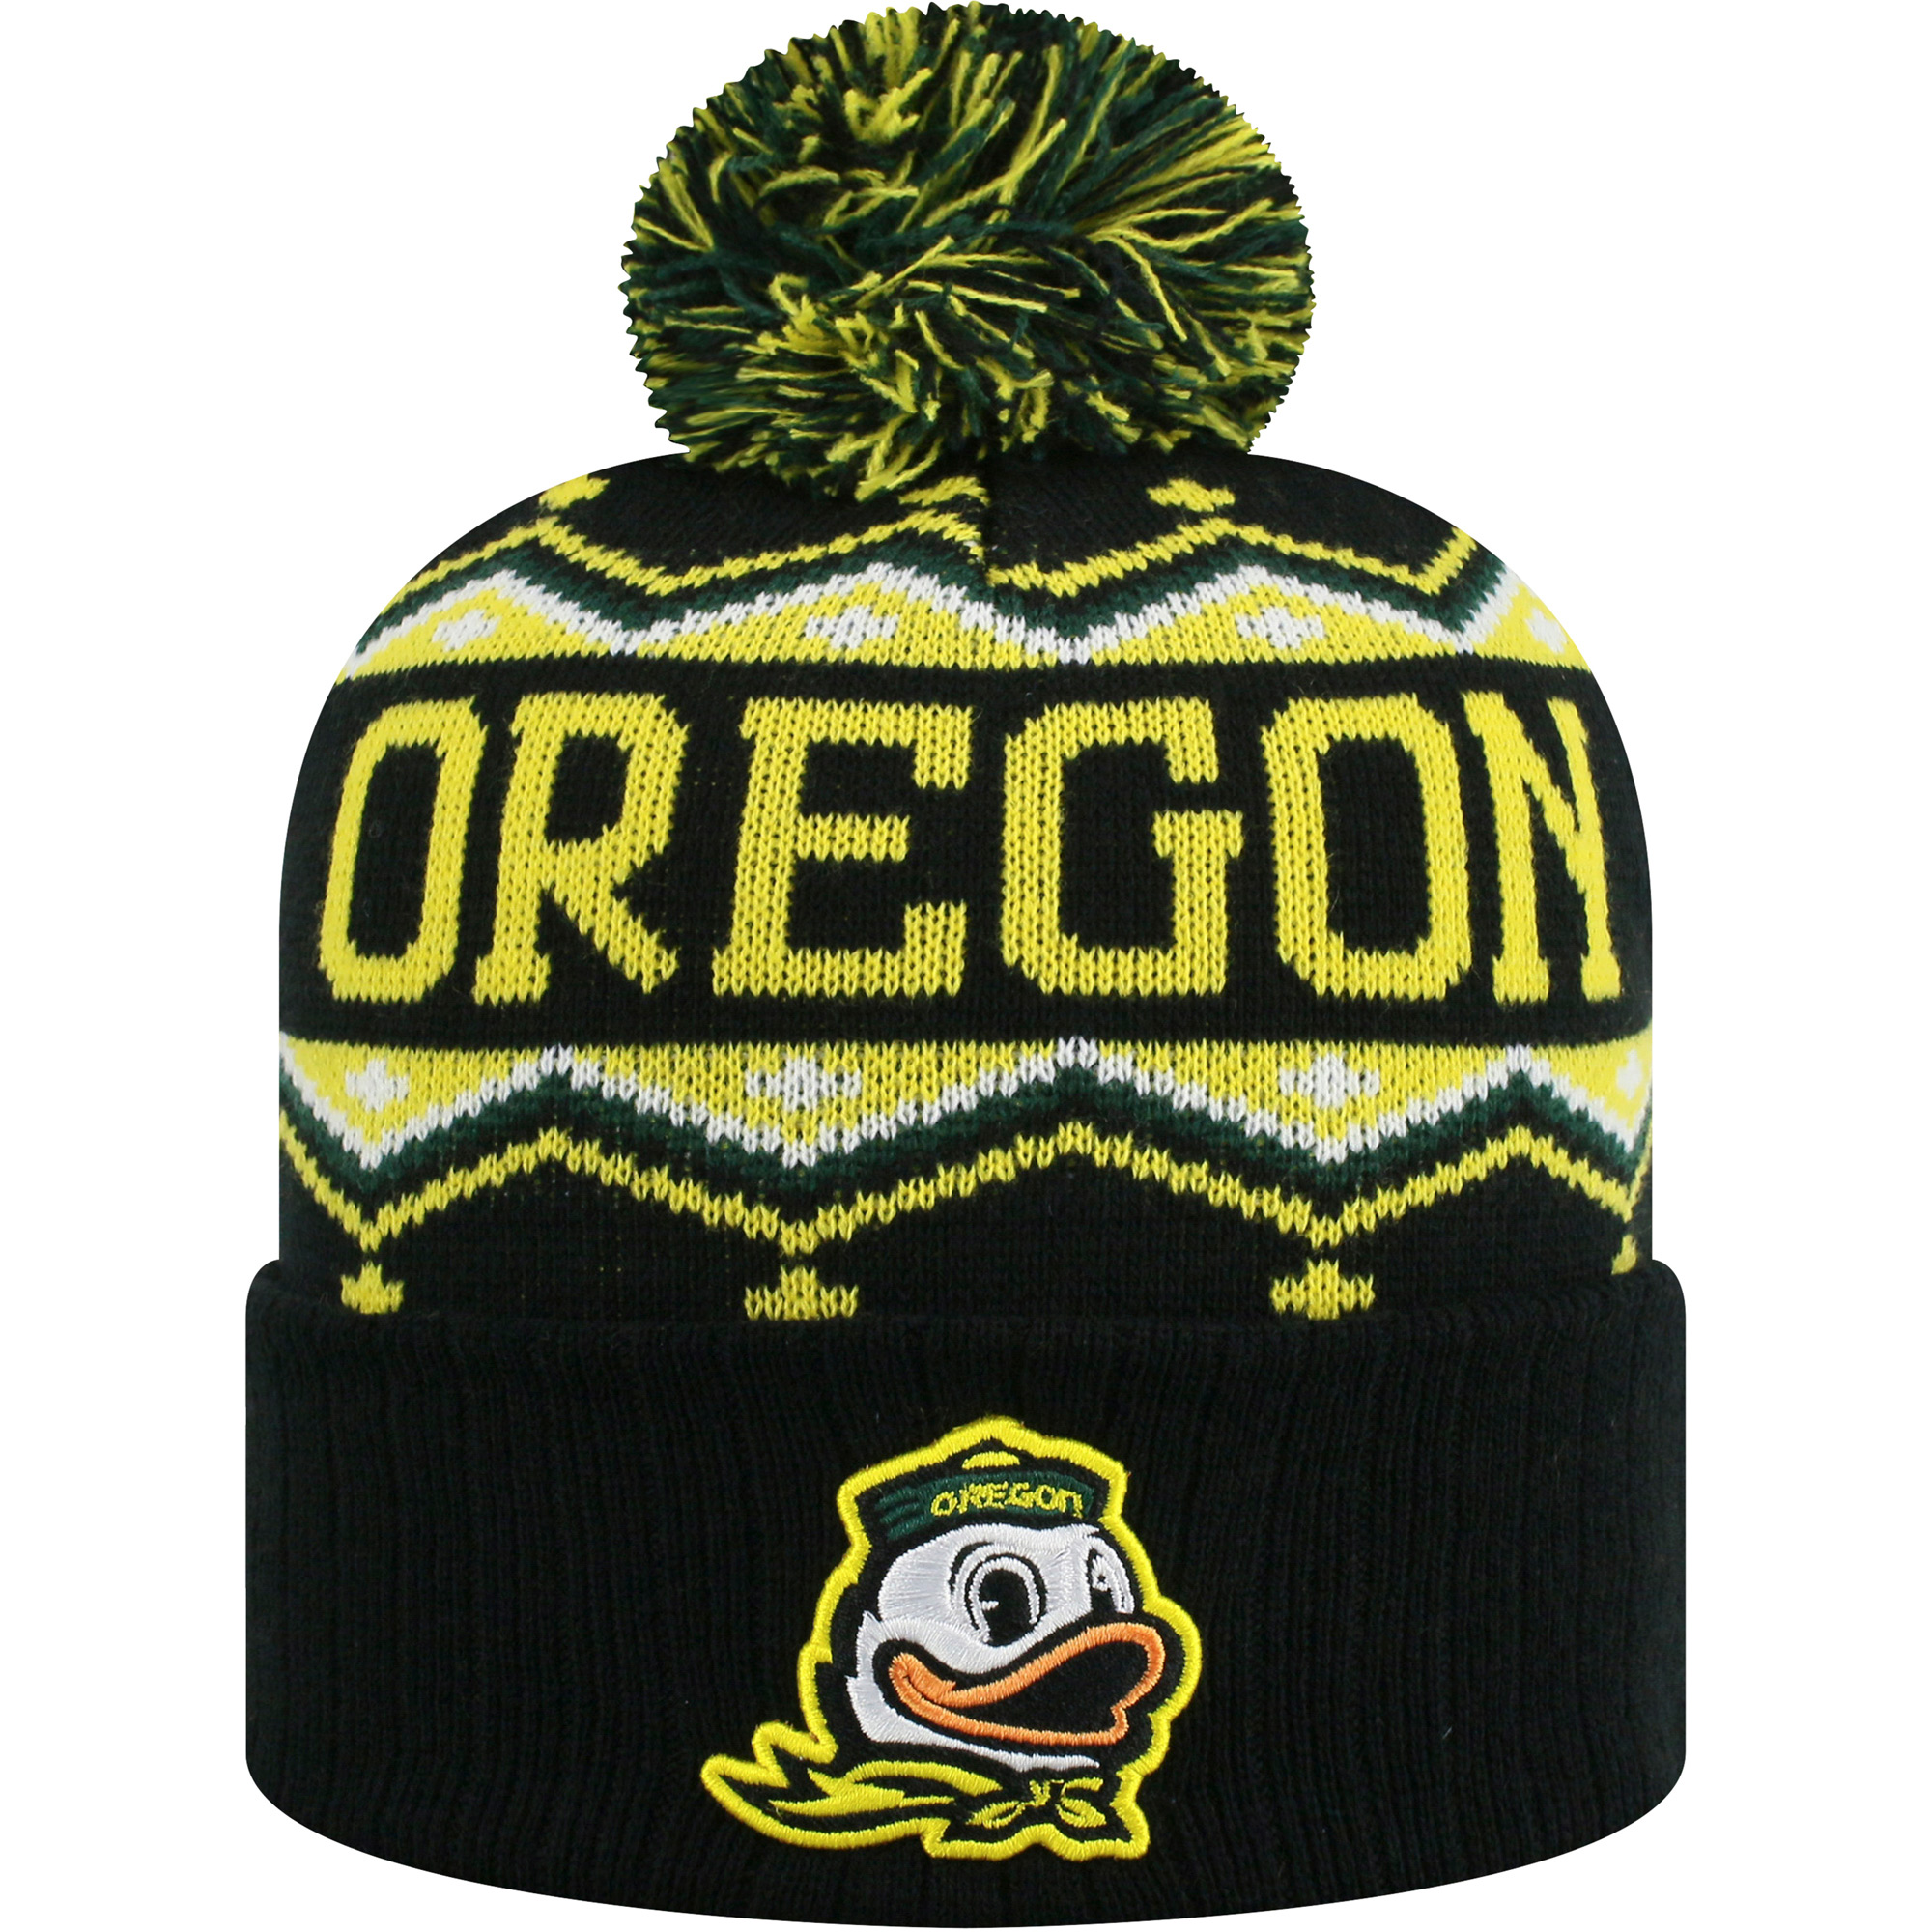 Men's Russell Black/Gold Oregon Ducks Sewn Cuffed Knit Hat With Pom - OSFA